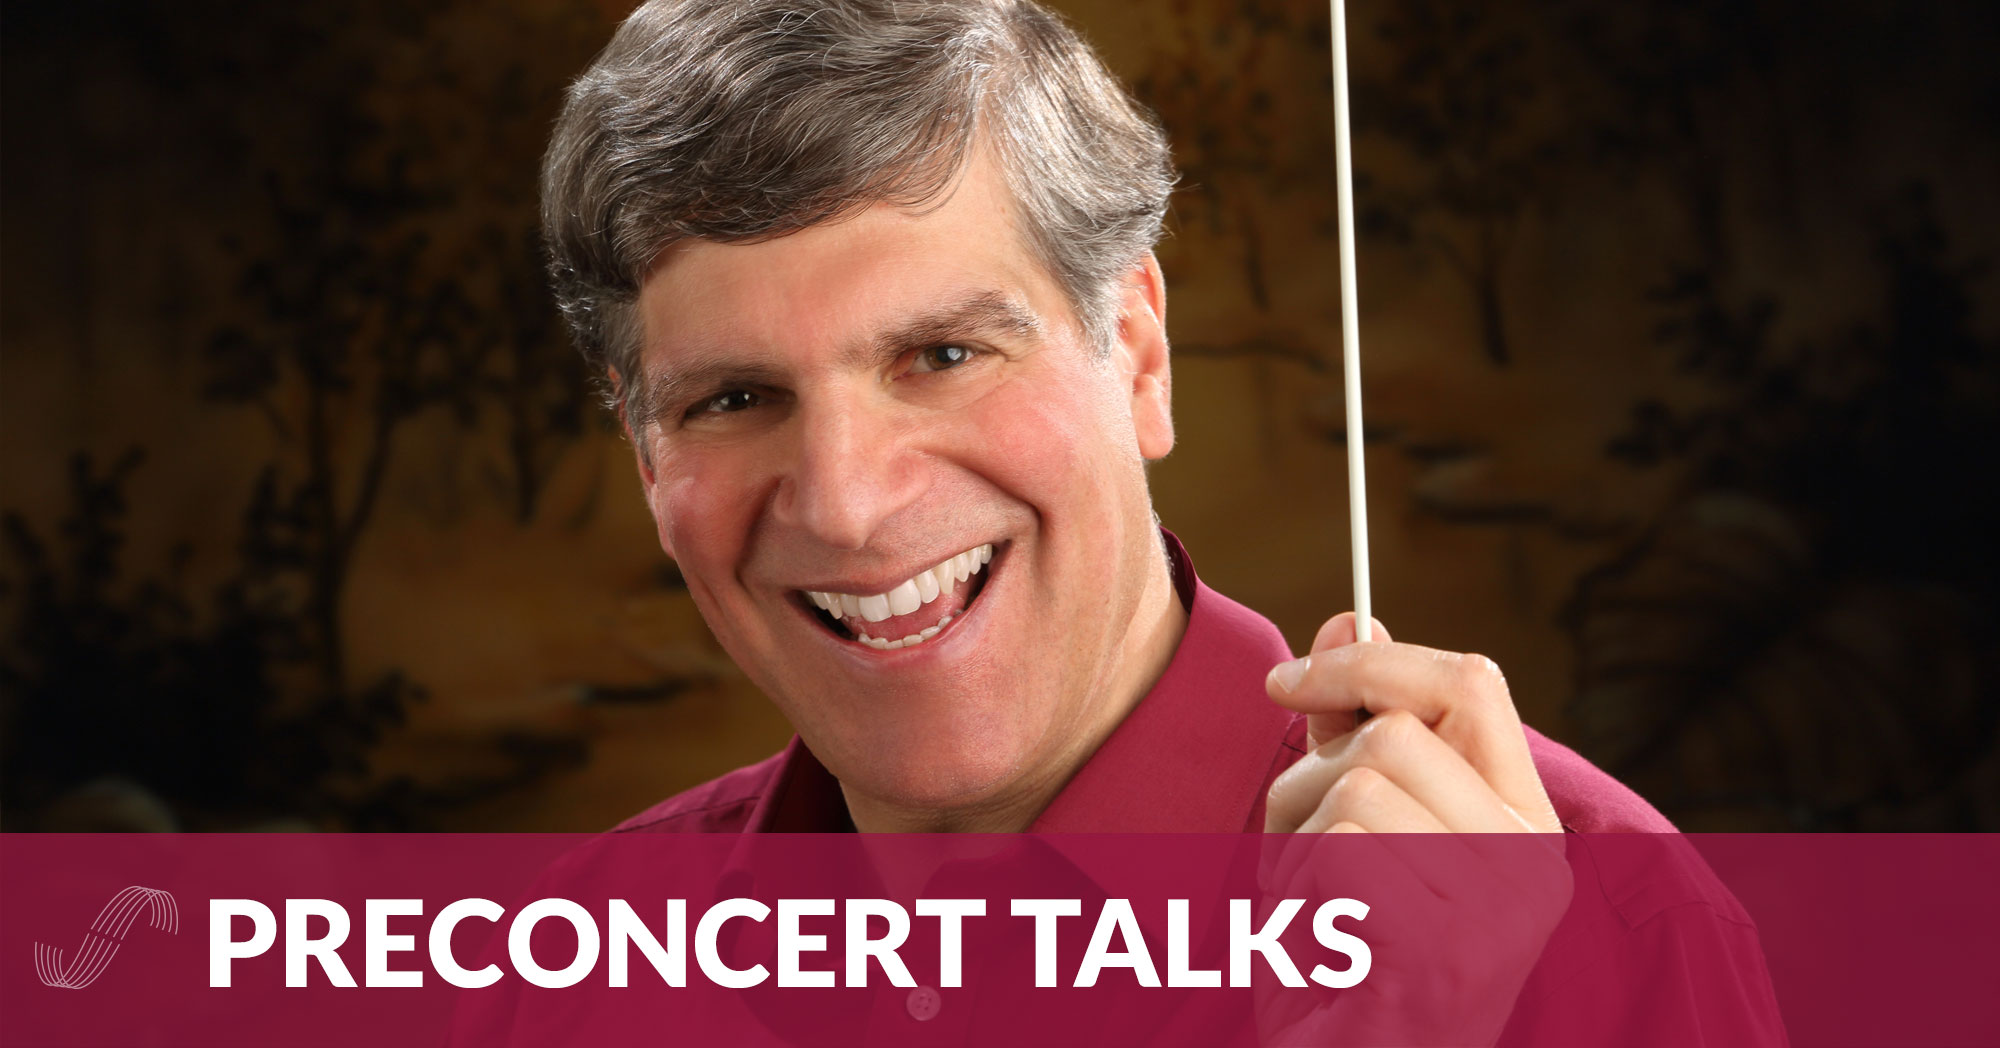 Stockton Symphony Preconcert Talks